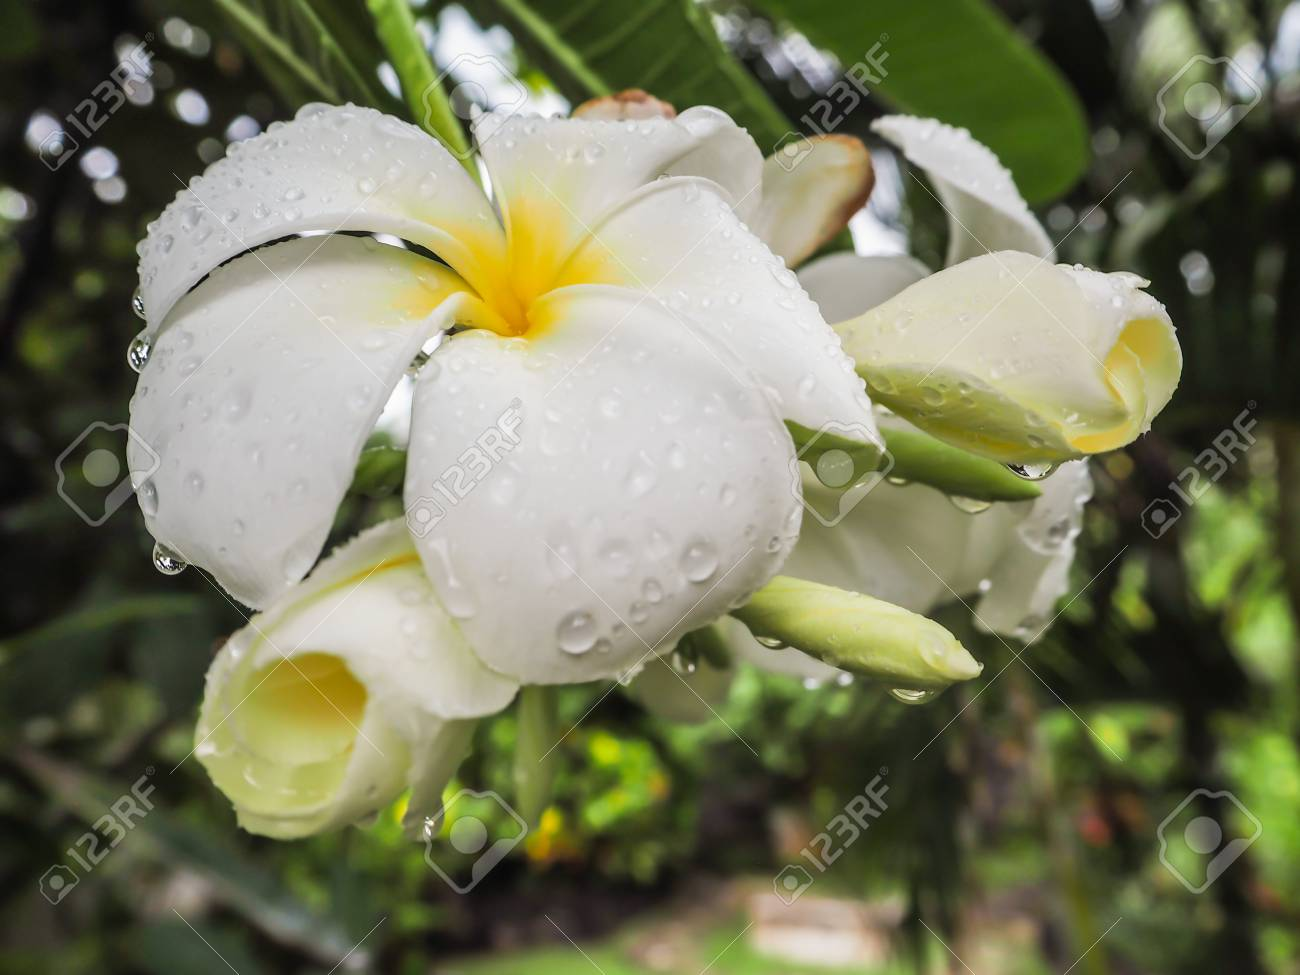 Bunch of white plumeria or frangipani flowers covered in water bunch of white plumeria or frangipani flowers covered in water droplets hanging on a tree mightylinksfo